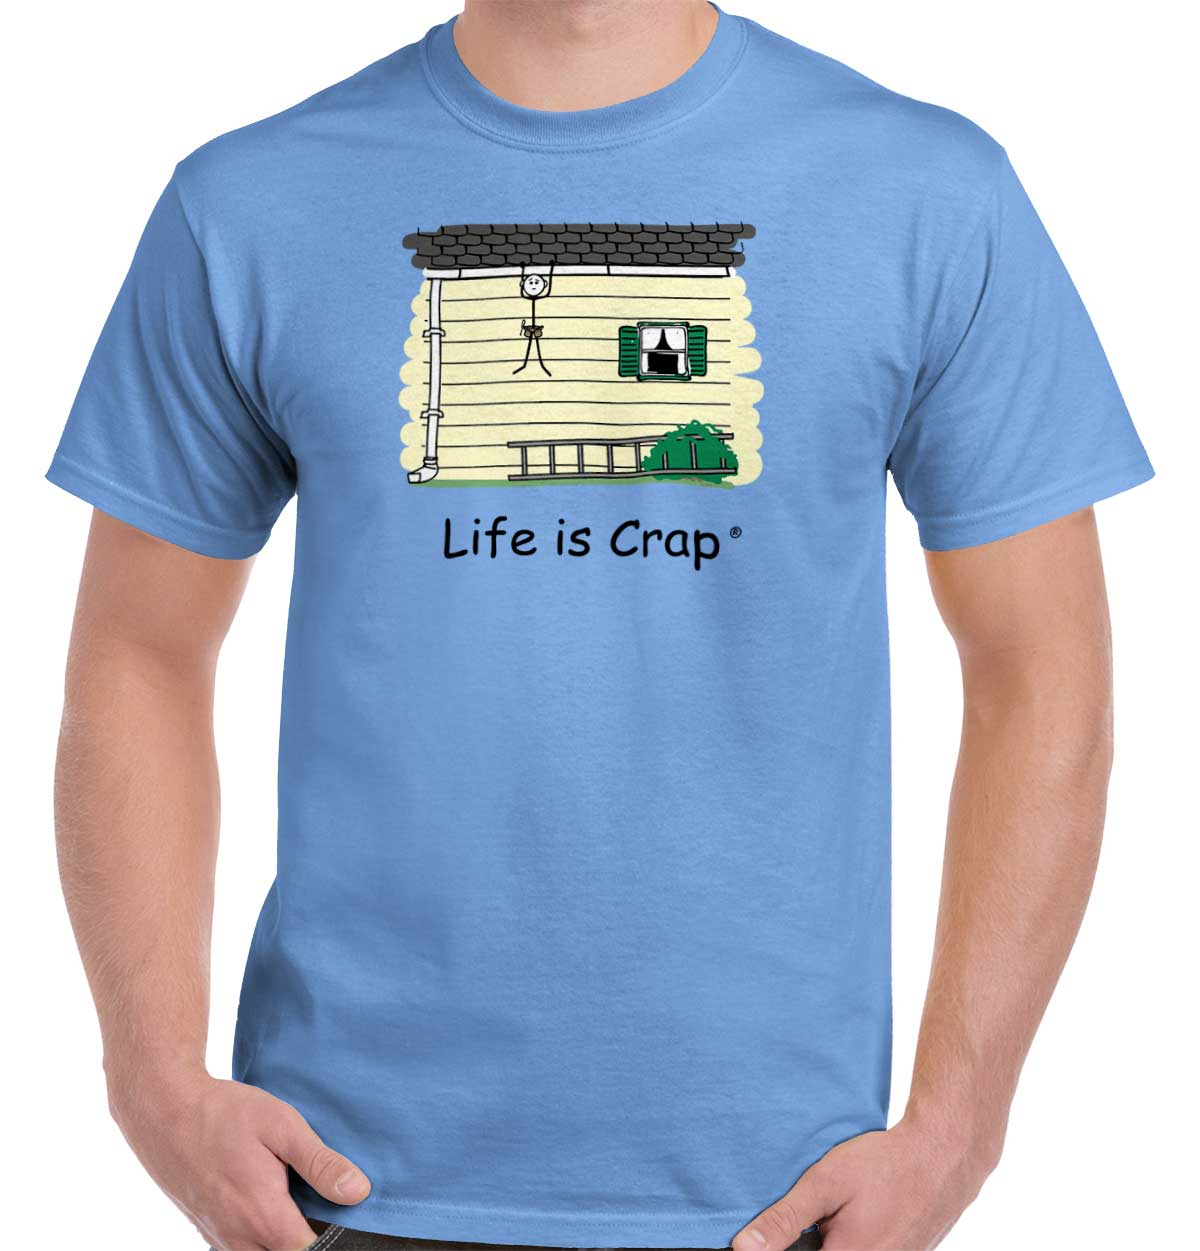 Life is Crap Lost Ladder Funny Shirt | Cute Adult Gift Idea T-Shirt Tee